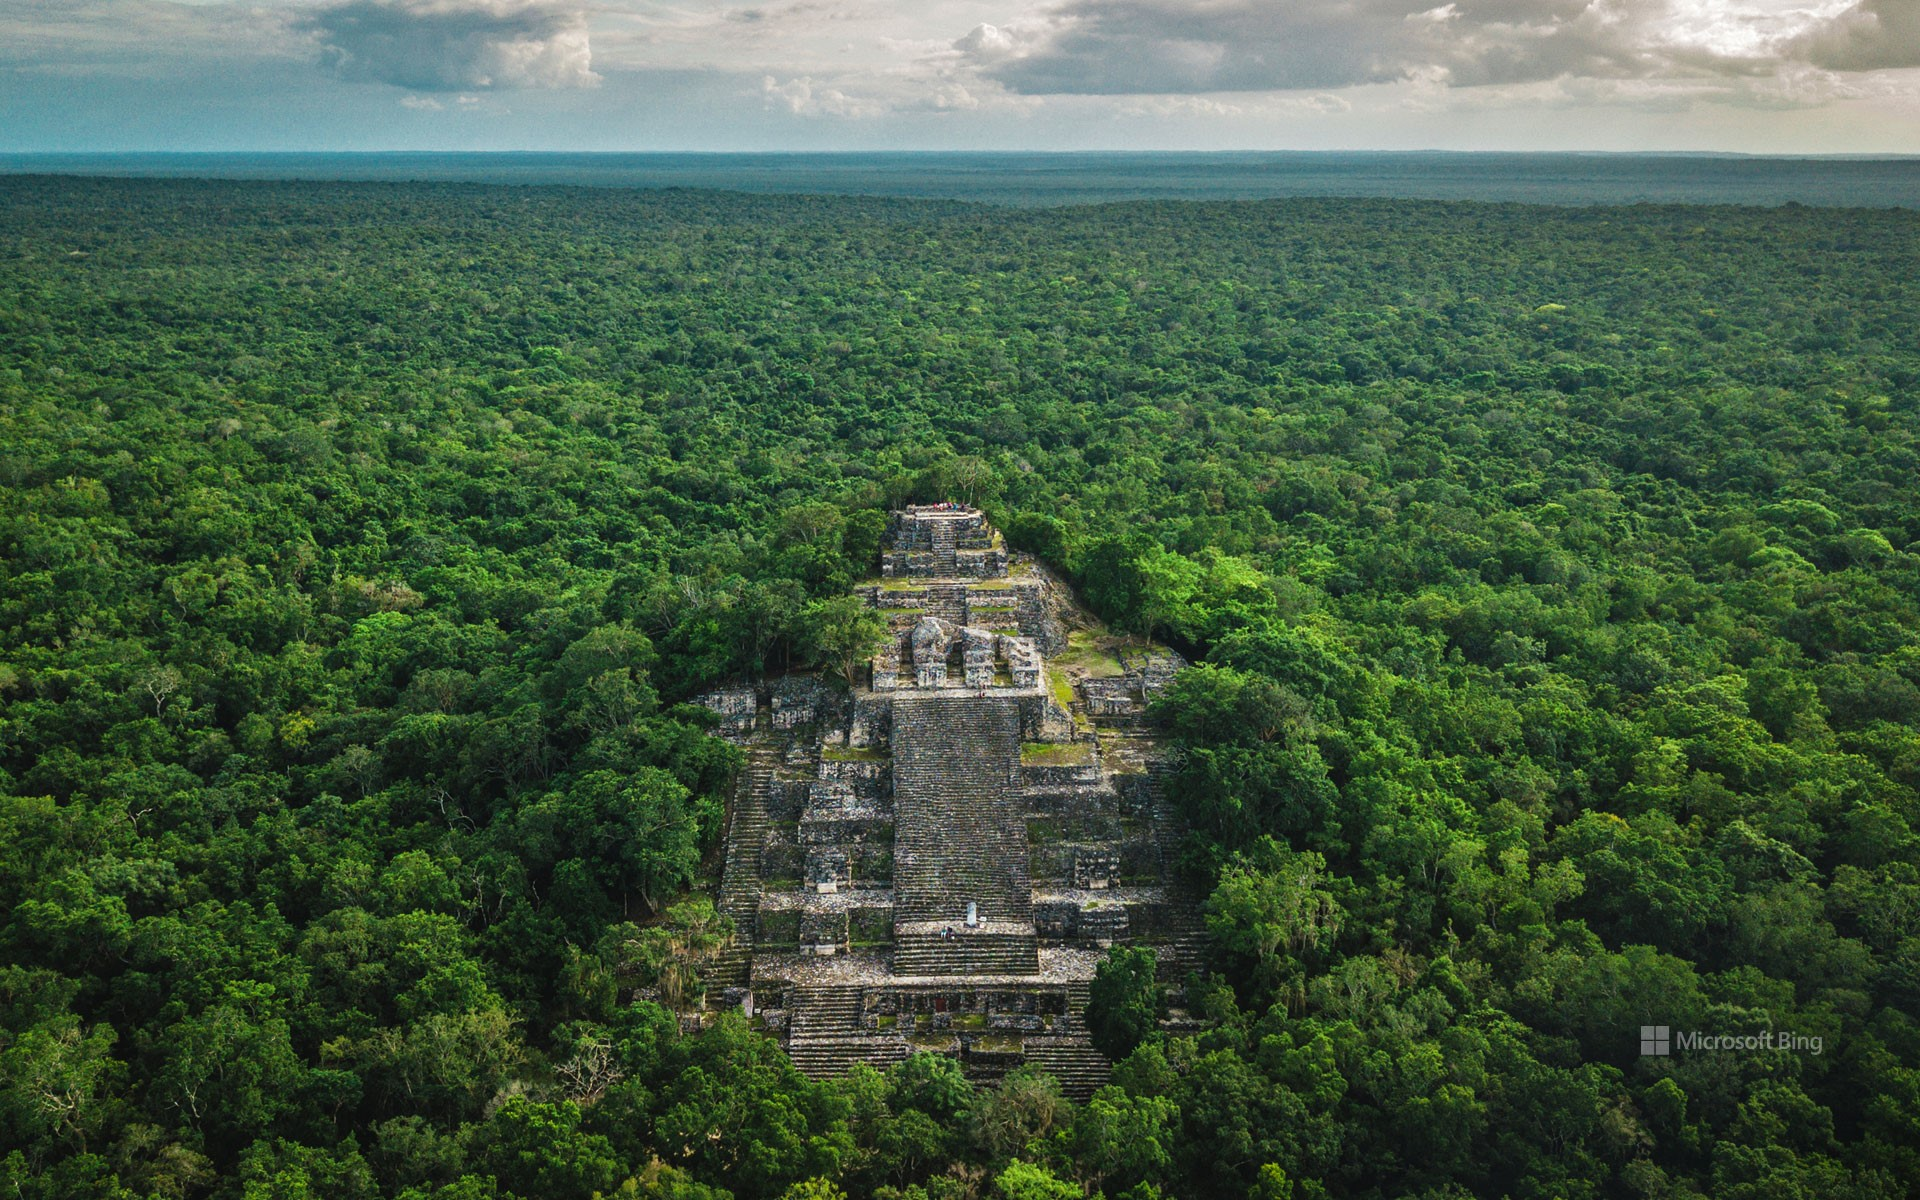 Ruins of the ancient Maya city of Calakmul surrounded by the jungle, Campeche, Mexico